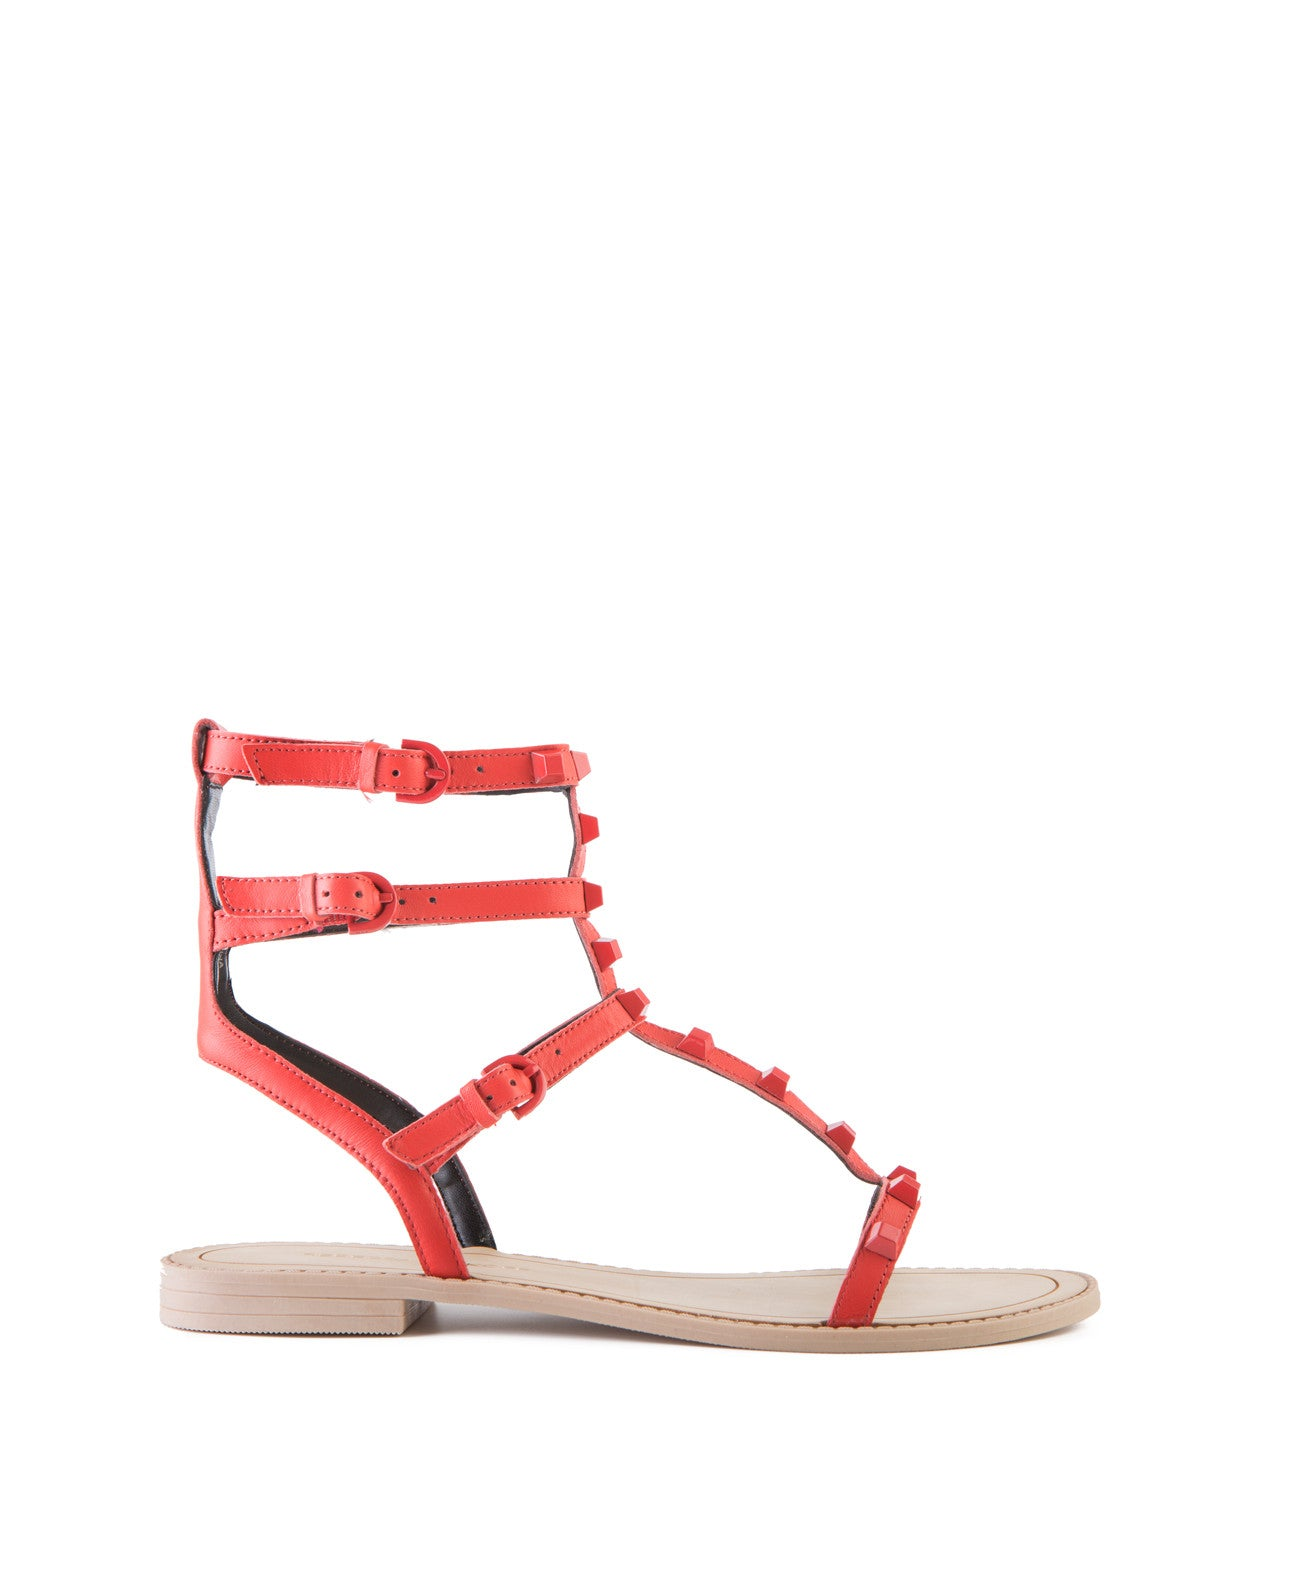 Georgina Leather Gladiator Sandal - Koko & Palenki - 1